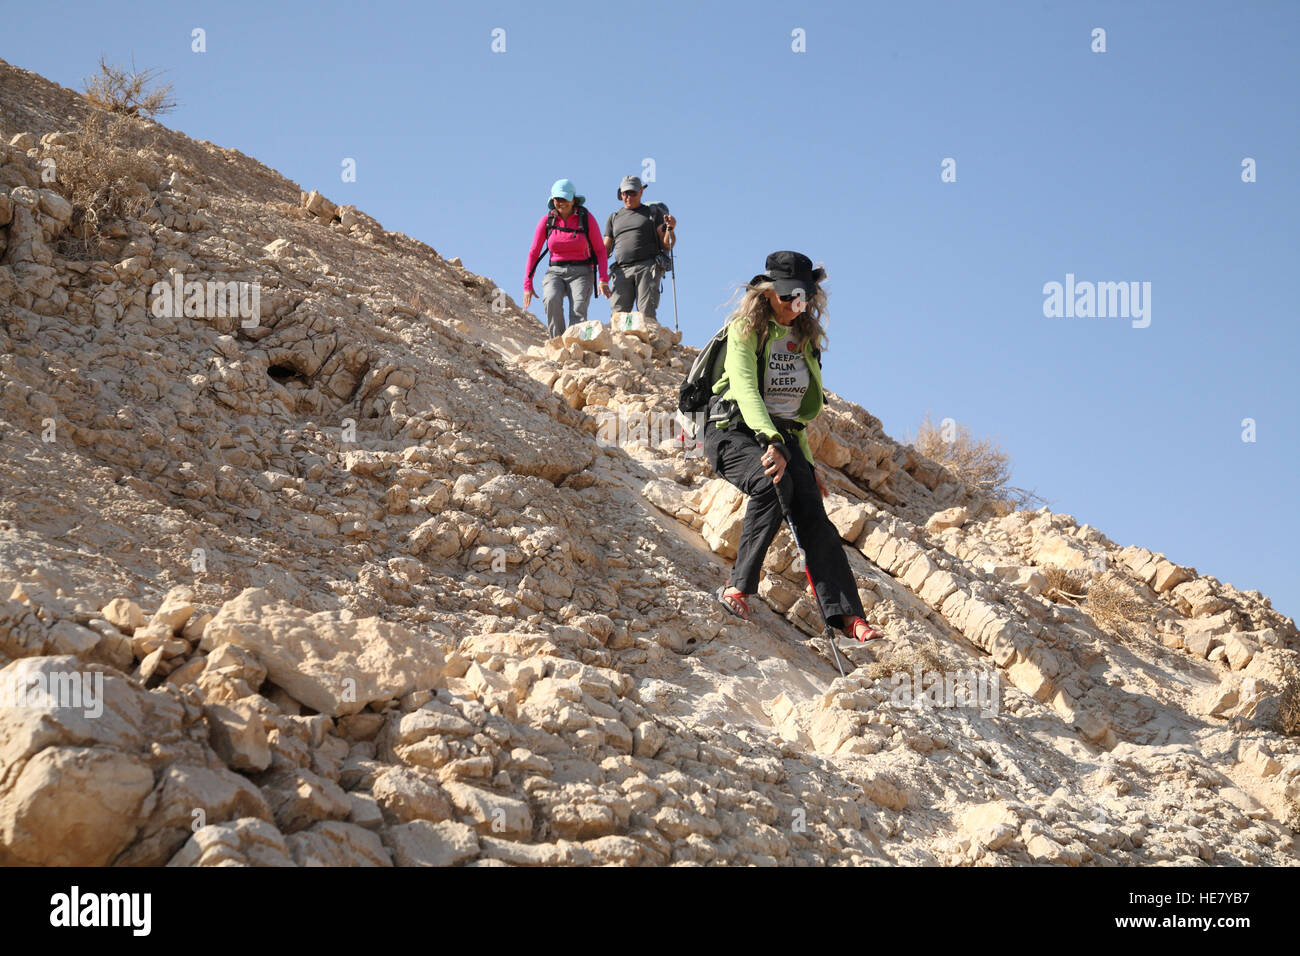 A senior citizen woman hiker descends carefully a very steep rocky slope from Mount Massor using a hiking stick - Stock Image